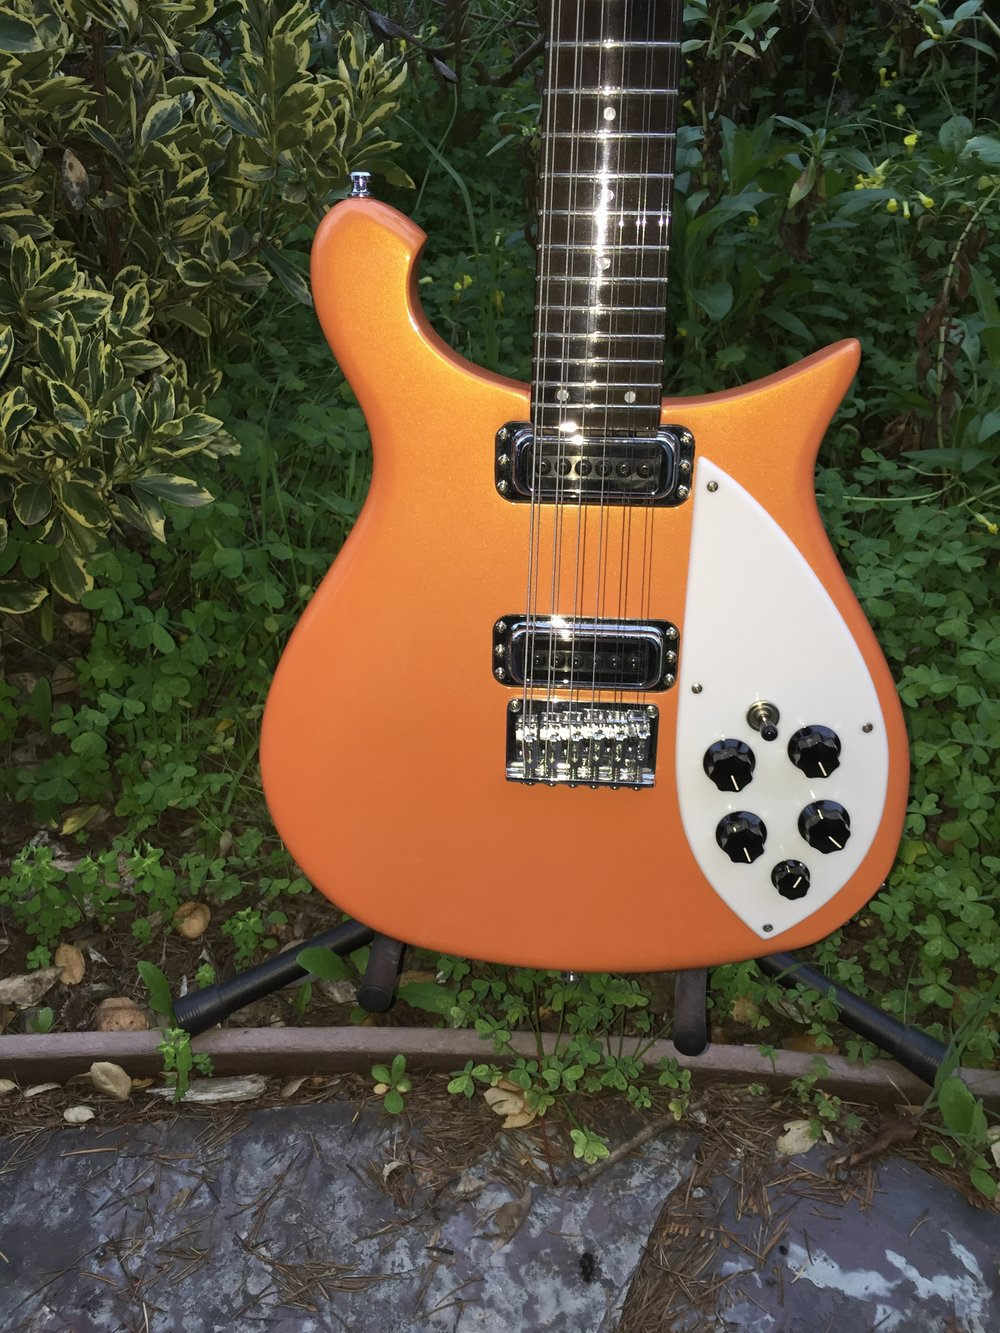 JOHN ASHFIELD'S PEARL TANGERINE 650/12 CONVERSION